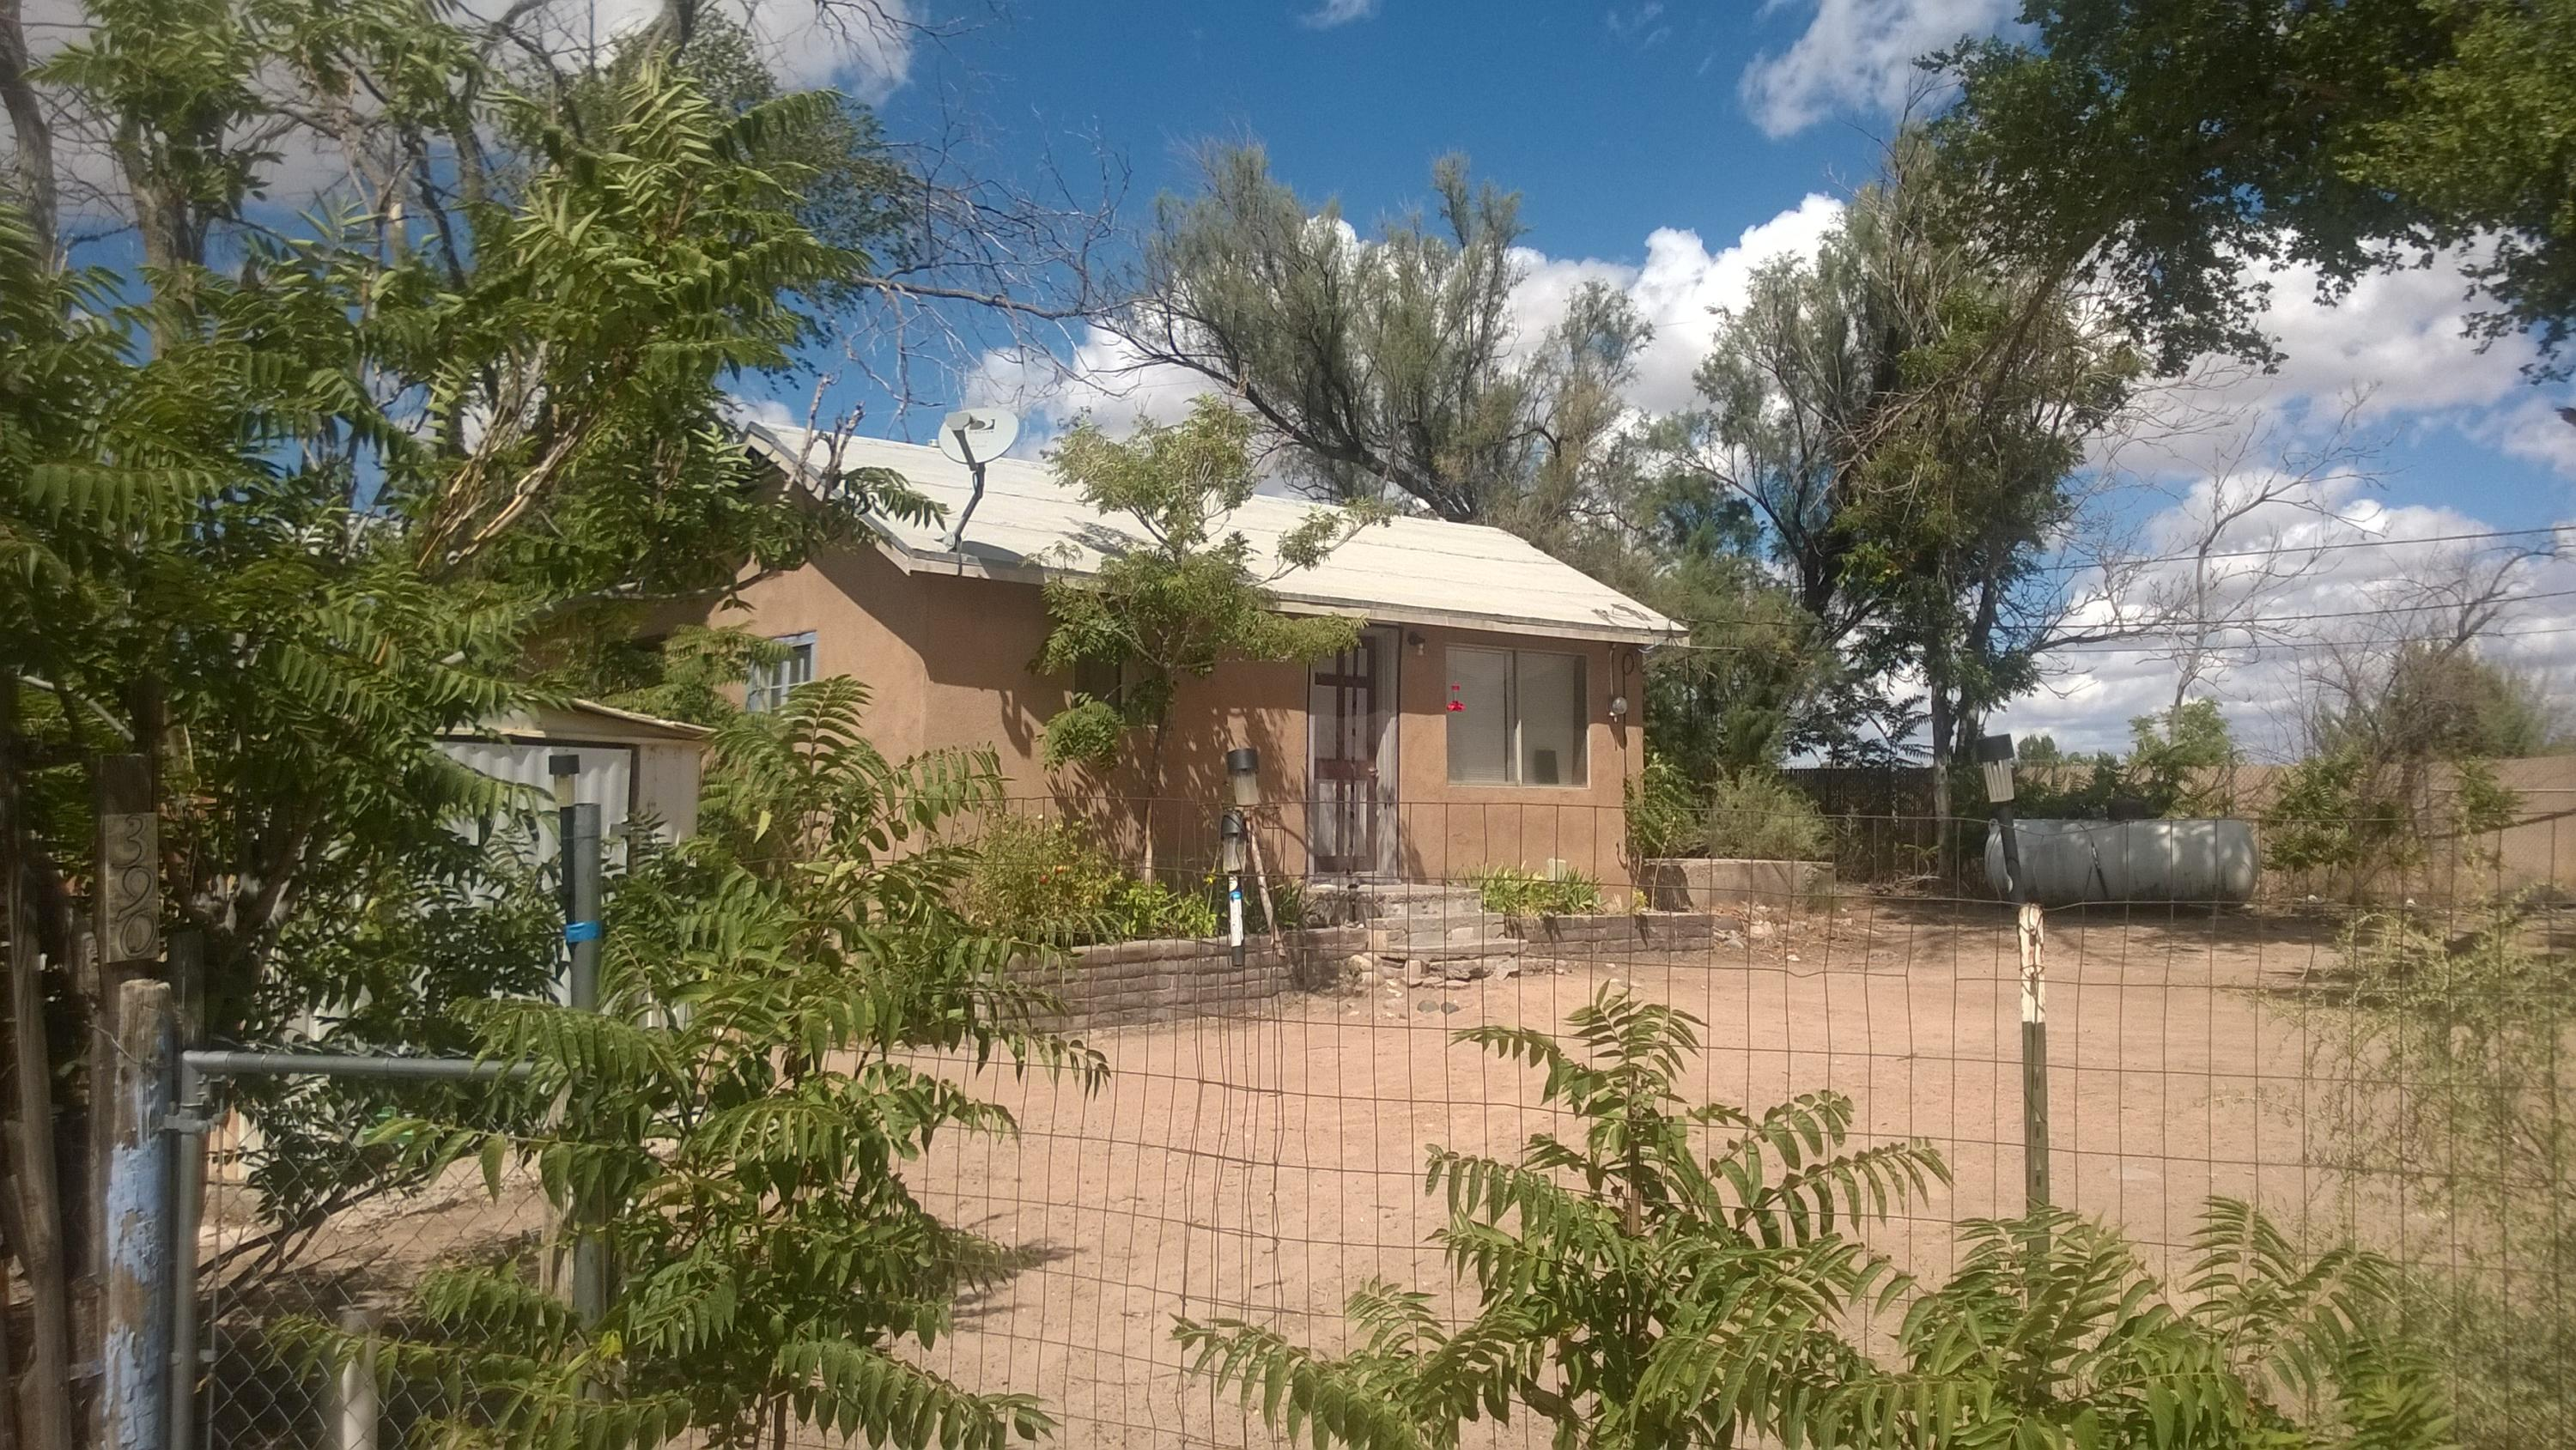 Corrales Property under $200K... Handy Person Special... Fixer Upper... Property has one home and on mobile home with an addition.  Both Dwellings Need Substantial Work...